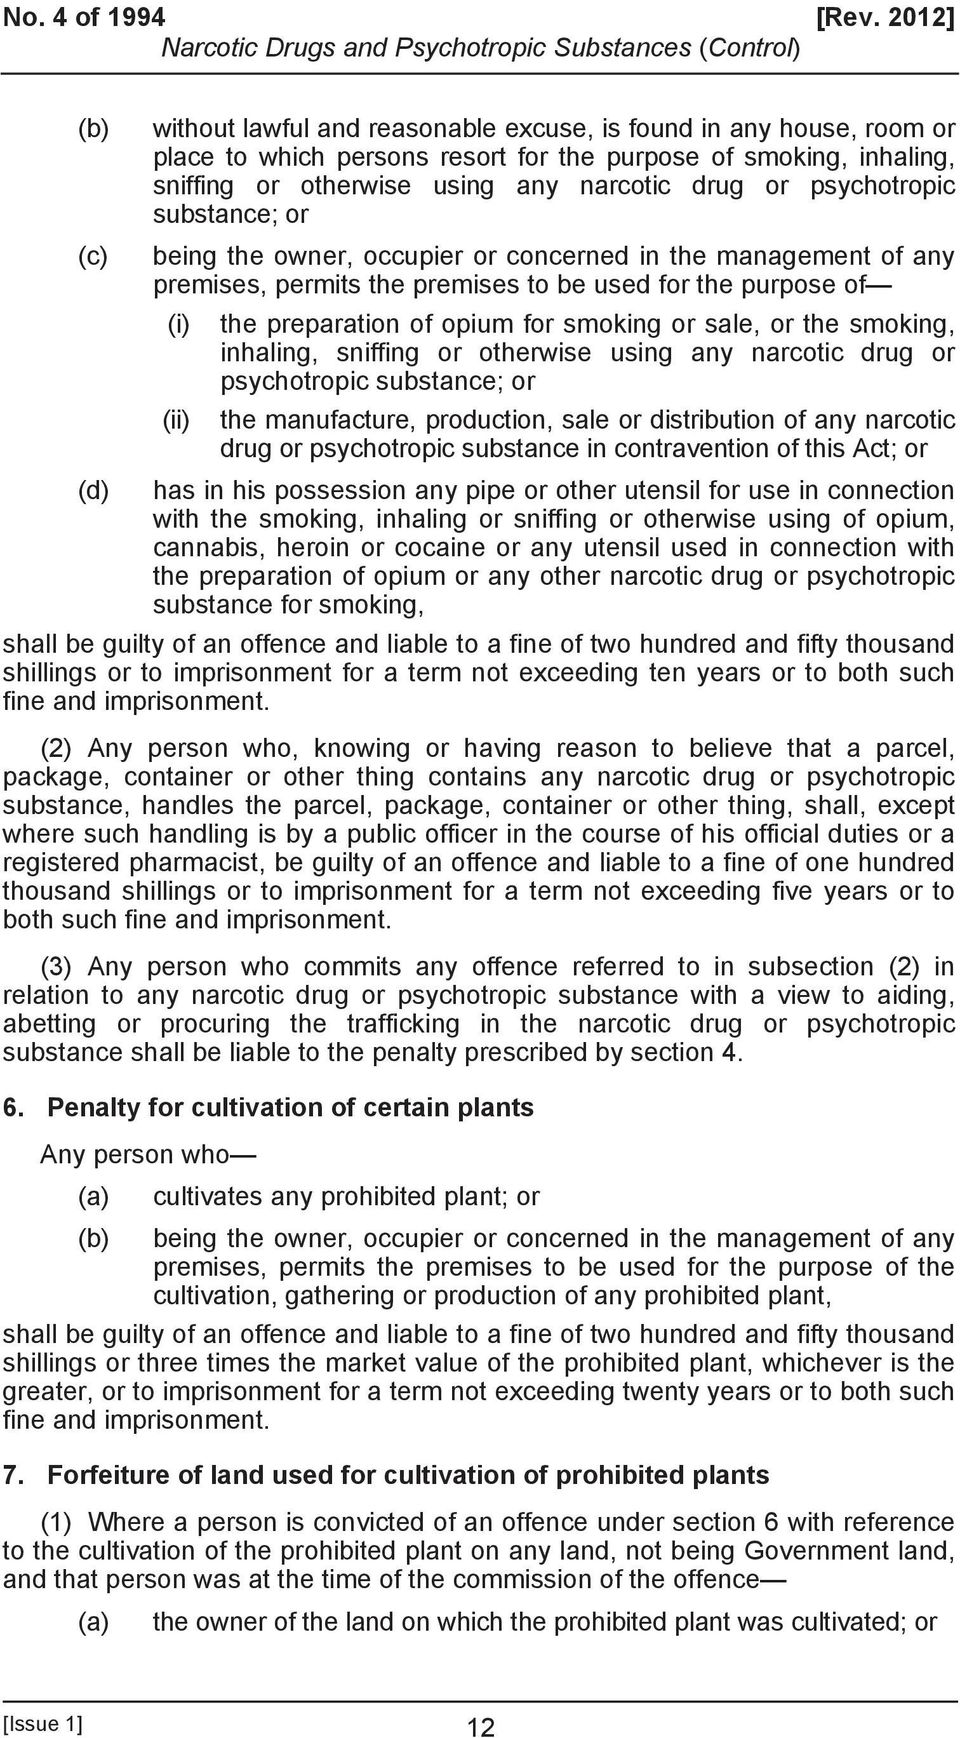 psychotropic substance; or (c) being the owner, occupier or concerned in the management of any premises, permits the premises to be used for the purpose of (i) the preparation of opium for smoking or